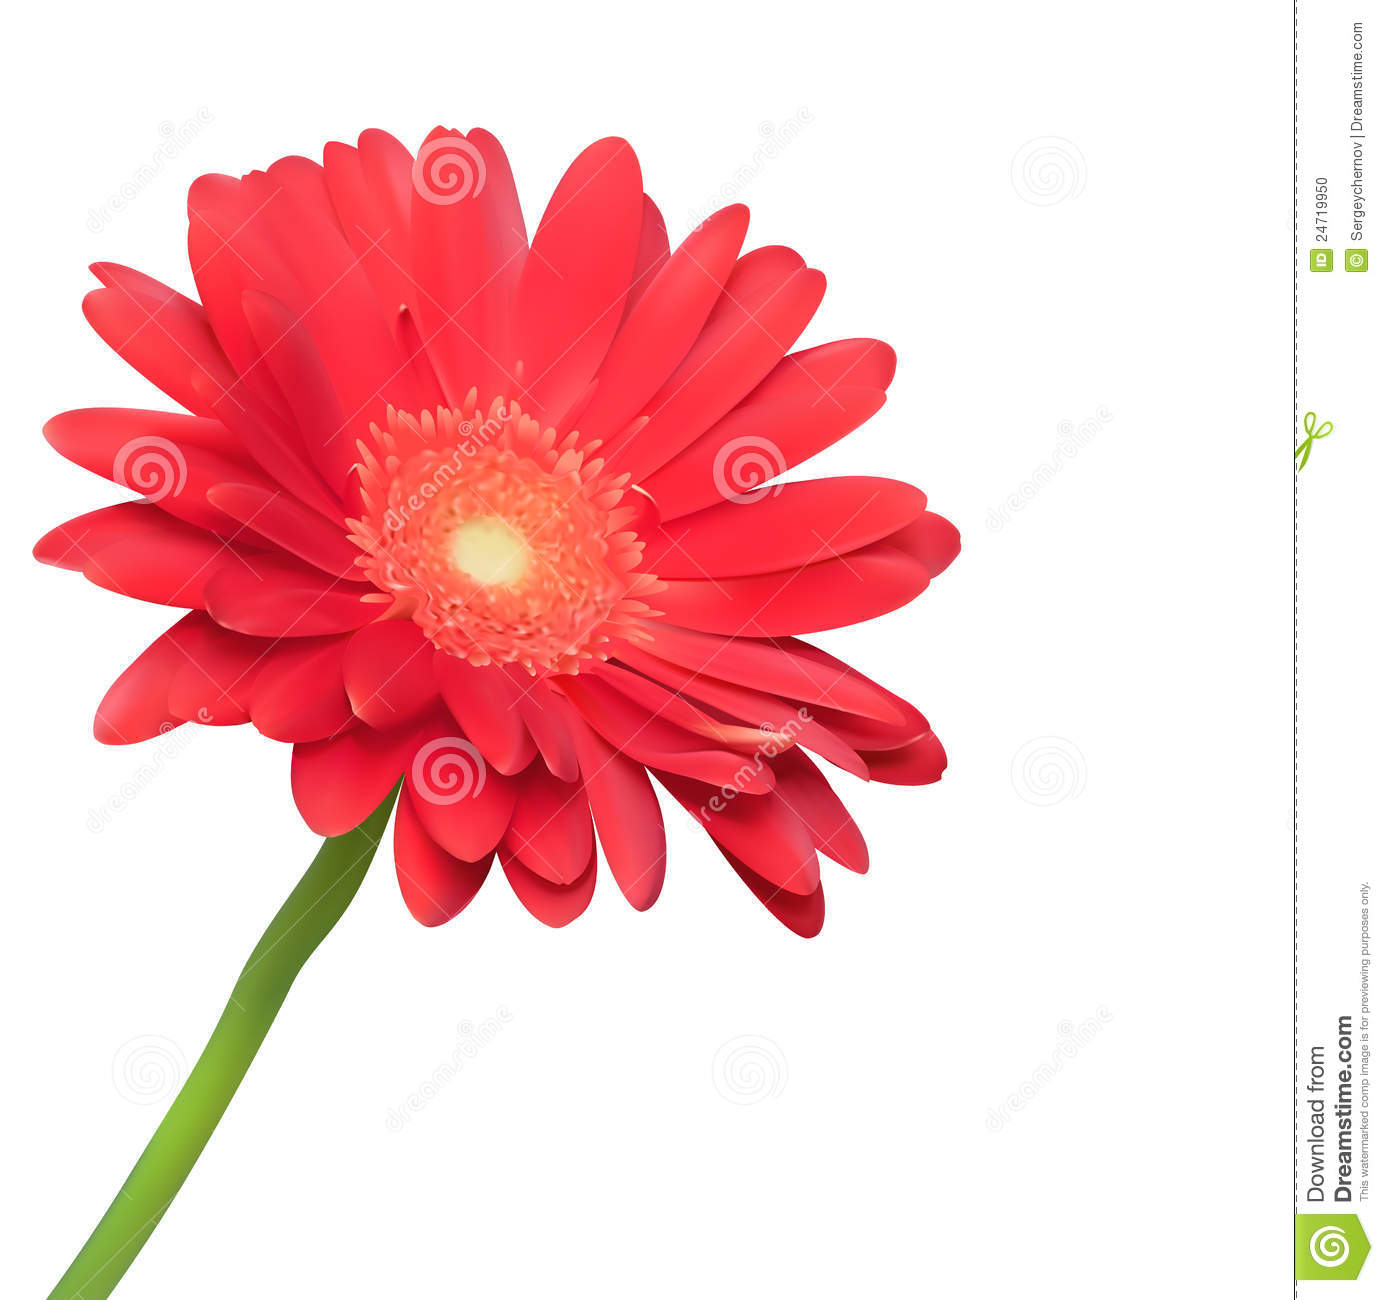 Red Flower On White Background Stock Vector Illustration Of Flora